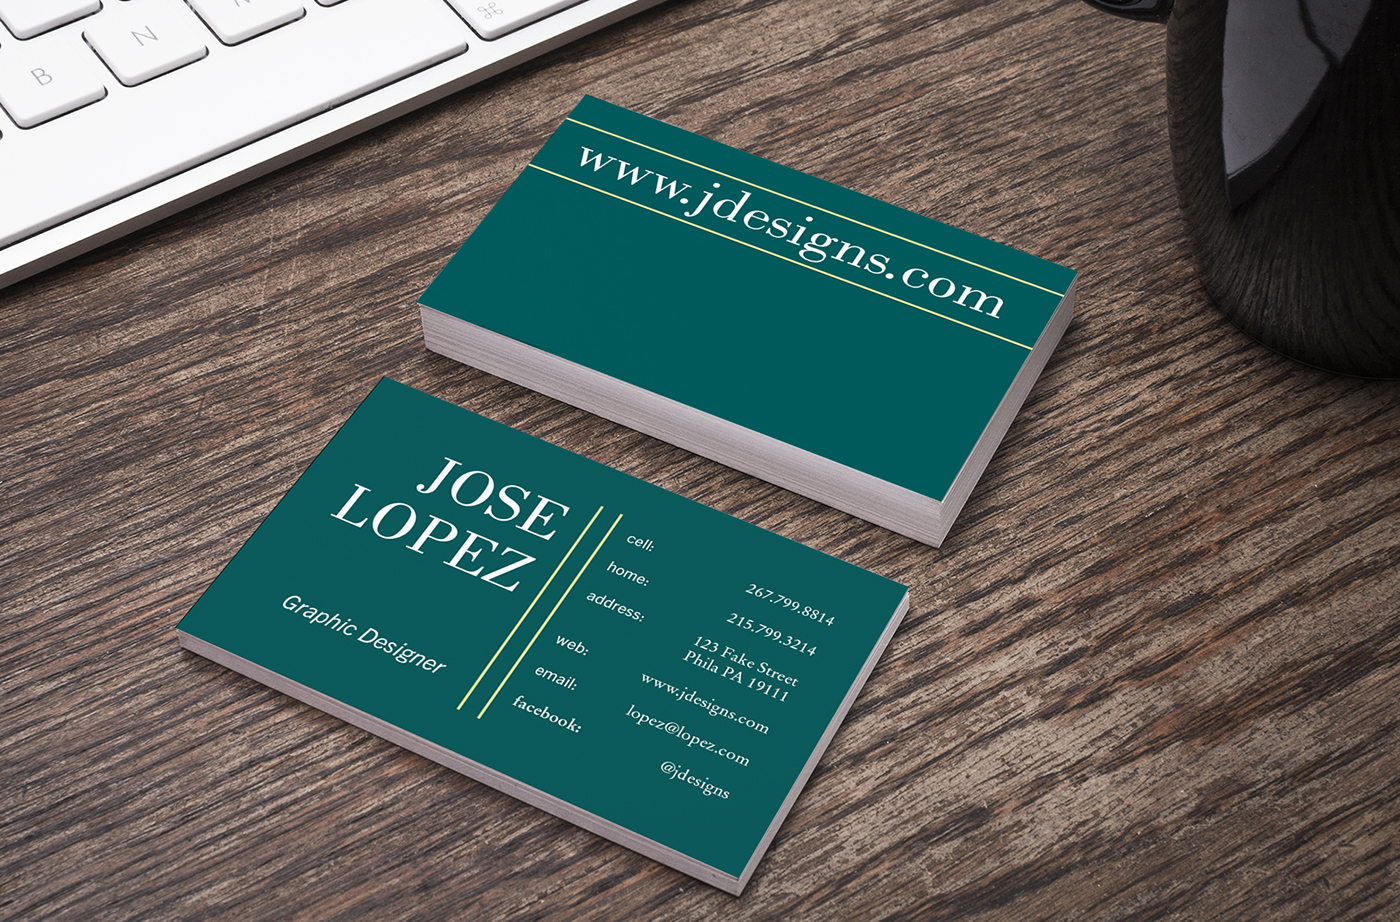 Art230 project02 business card on behance title font family bodini mt std style book size 2810 contact informationgraphic designer font family trade gothic next lt pro style italic colourmoves